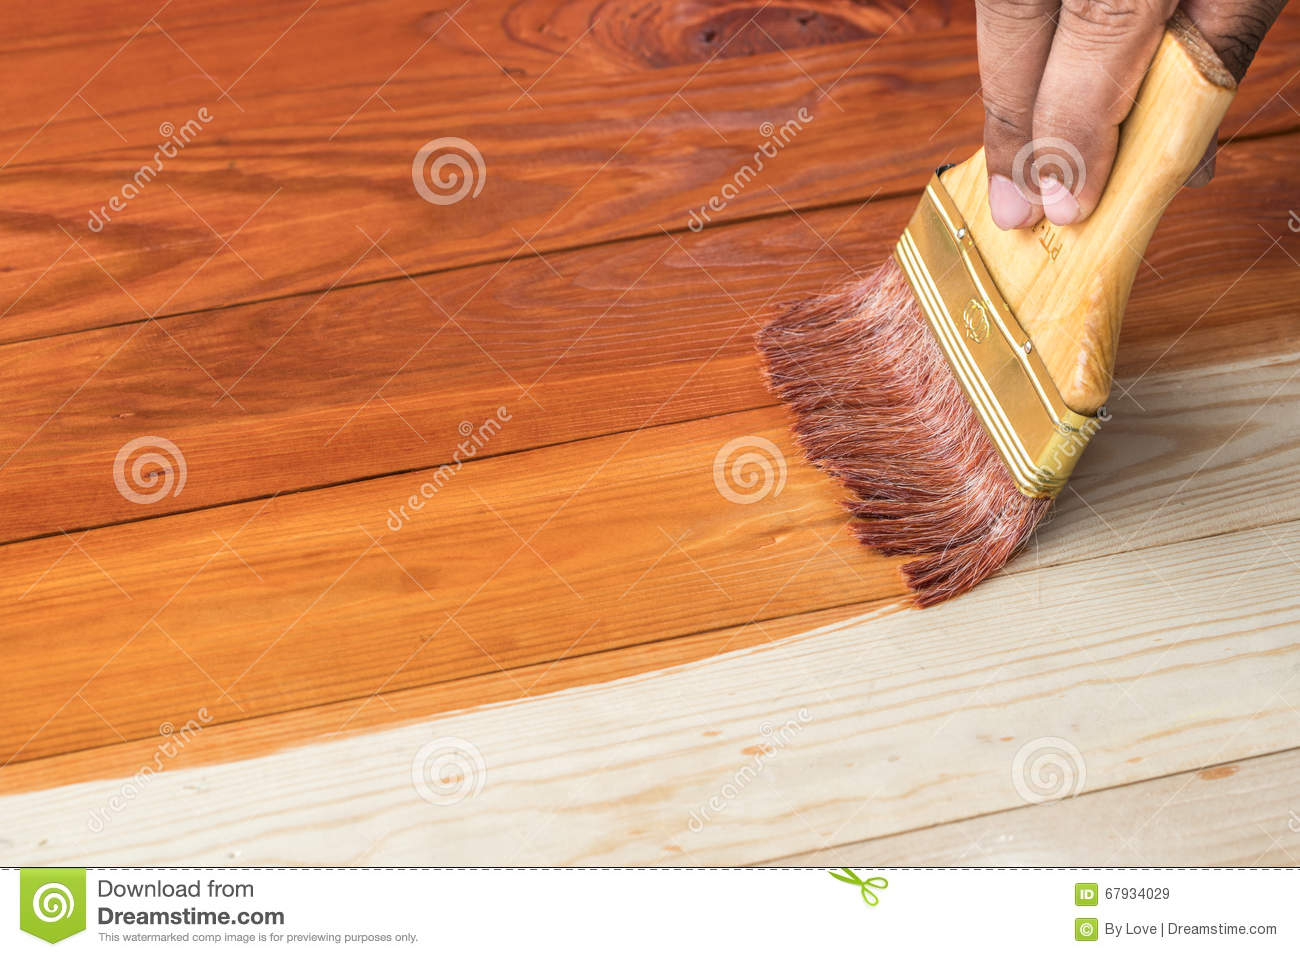 What Is The Best Paint To Paint Wooden Furniture